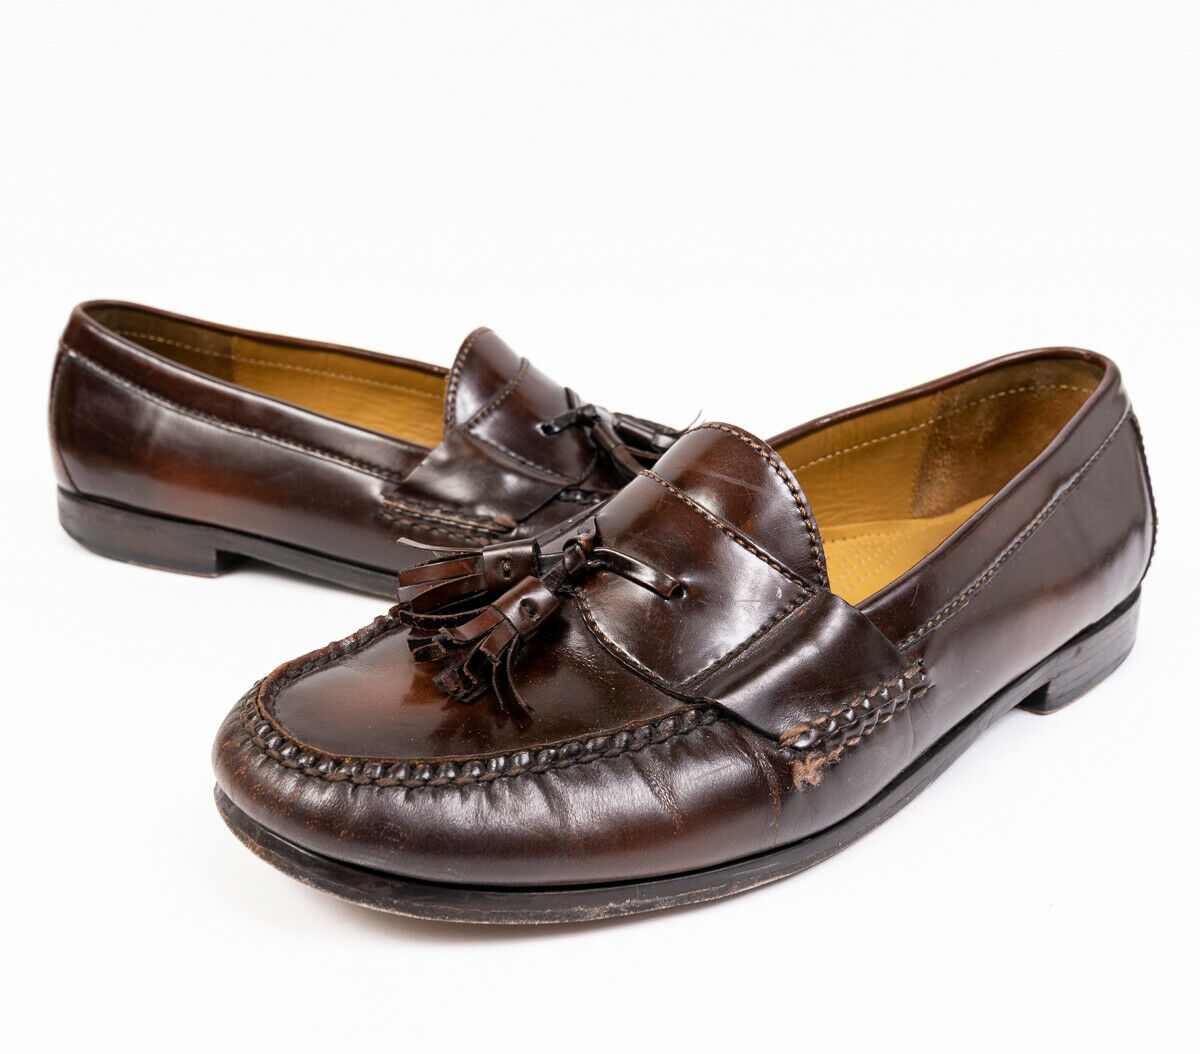 Cole Haan Mens Tassel Loafers Brown Leather 03508 Size 10.5 D